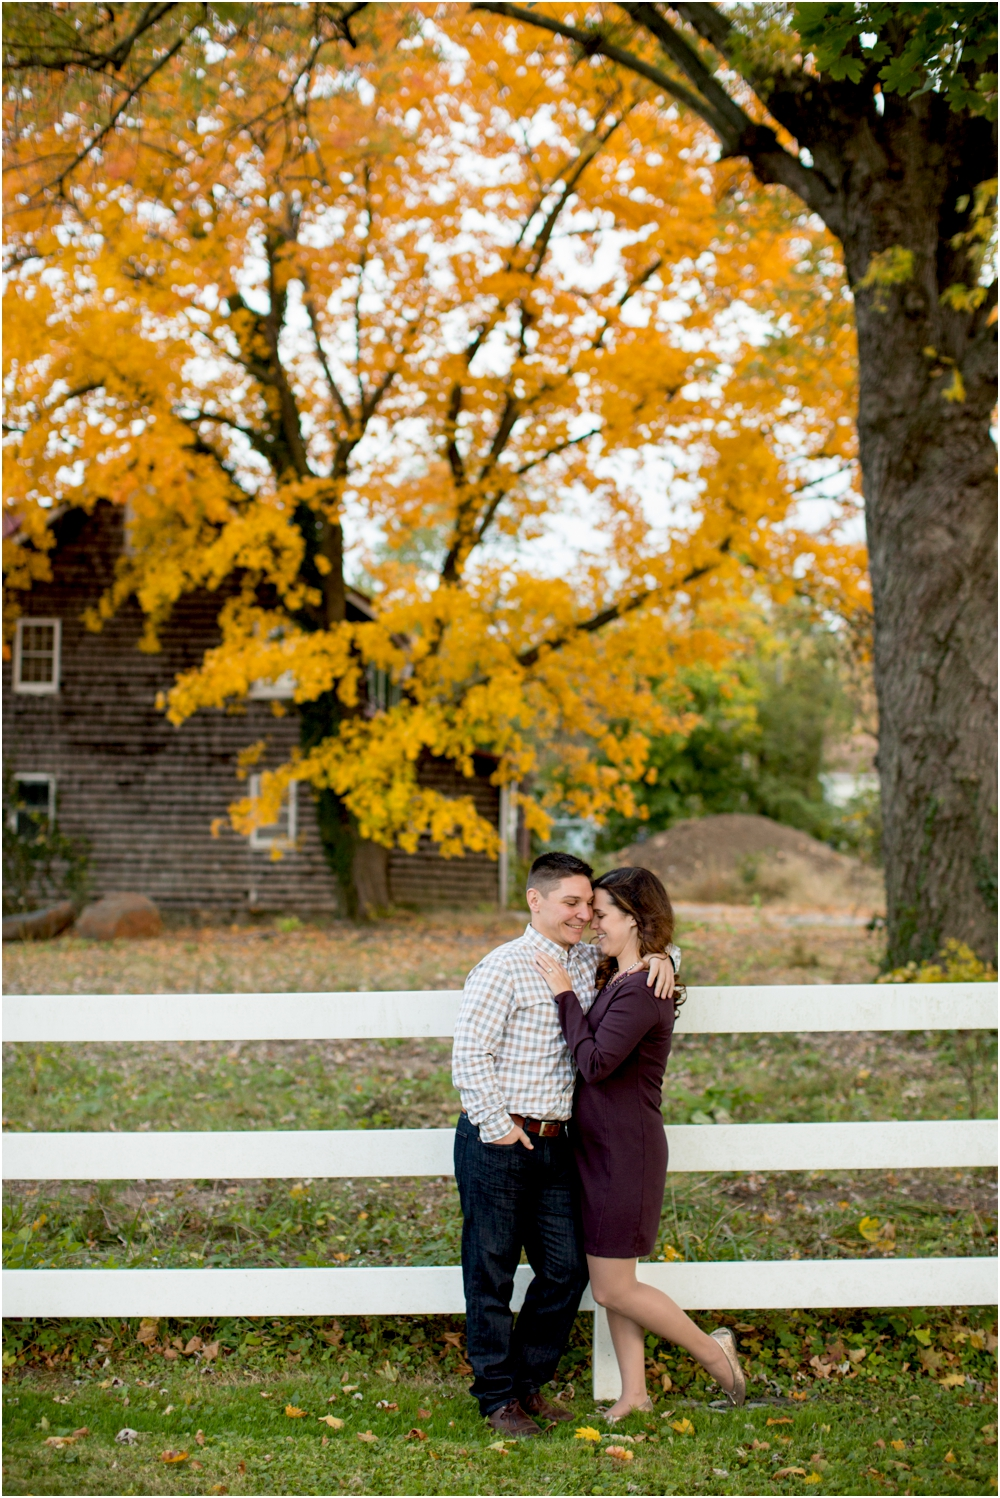 christina kyle engagement session elkridge furnace inn living radiant photograph photos_0044.jpg